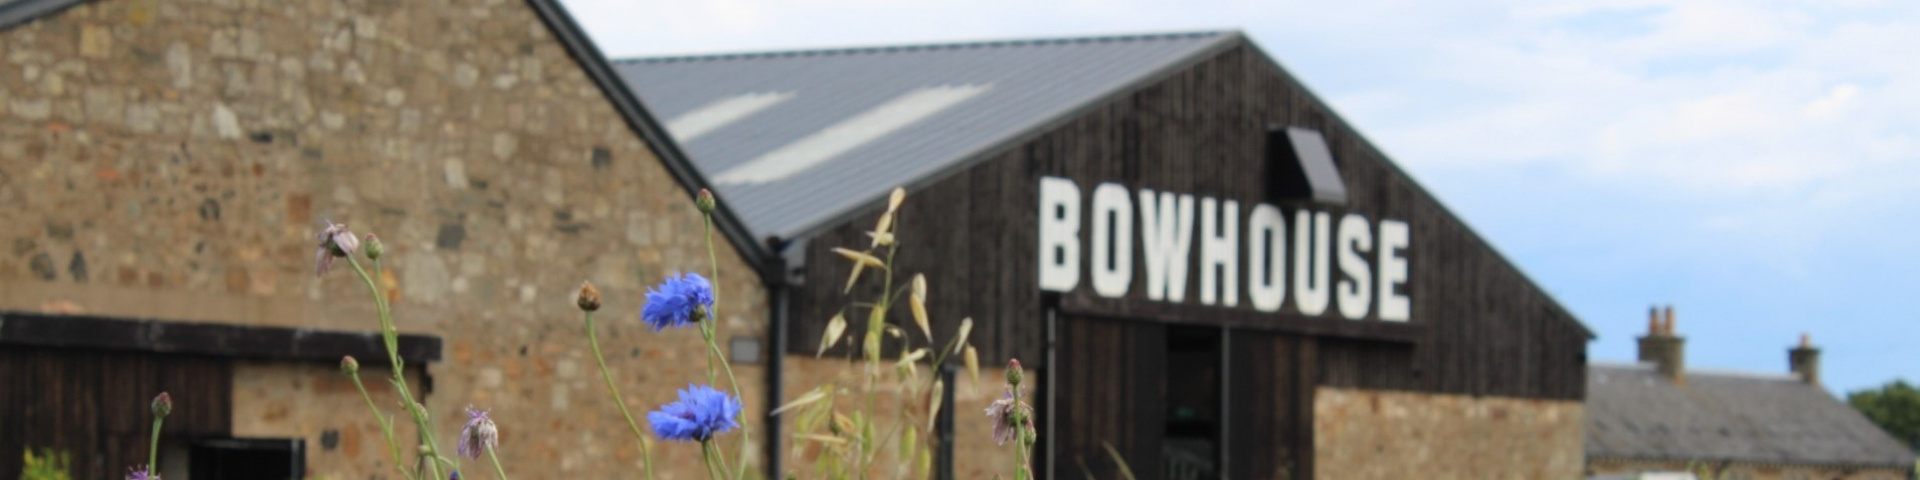 The Bowhouse production, gathering and market space